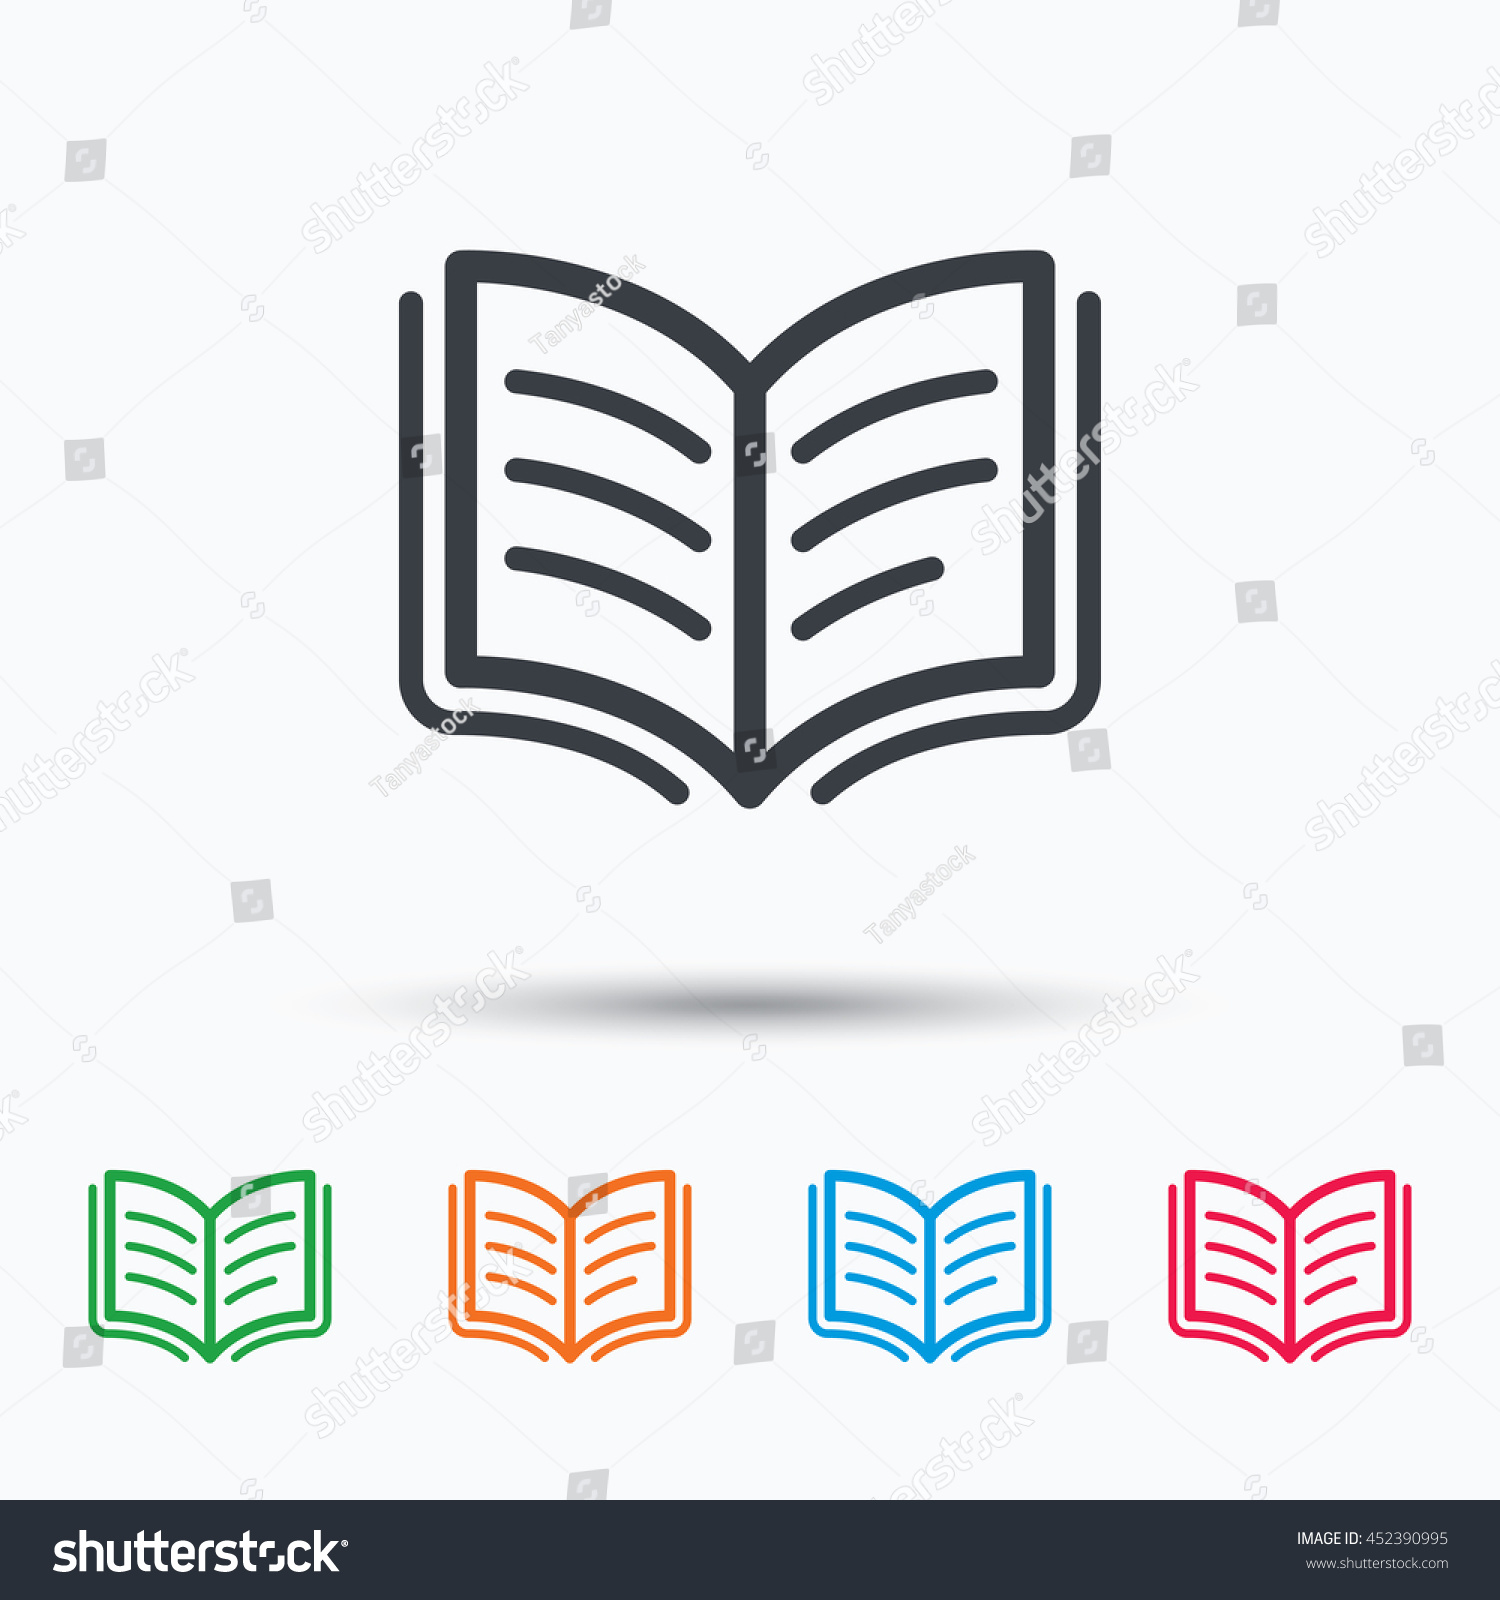 a symbol in literature globe books apple blank global geography  book icon study literature sign education stock vector study literature sign education textbook symbol colored flat